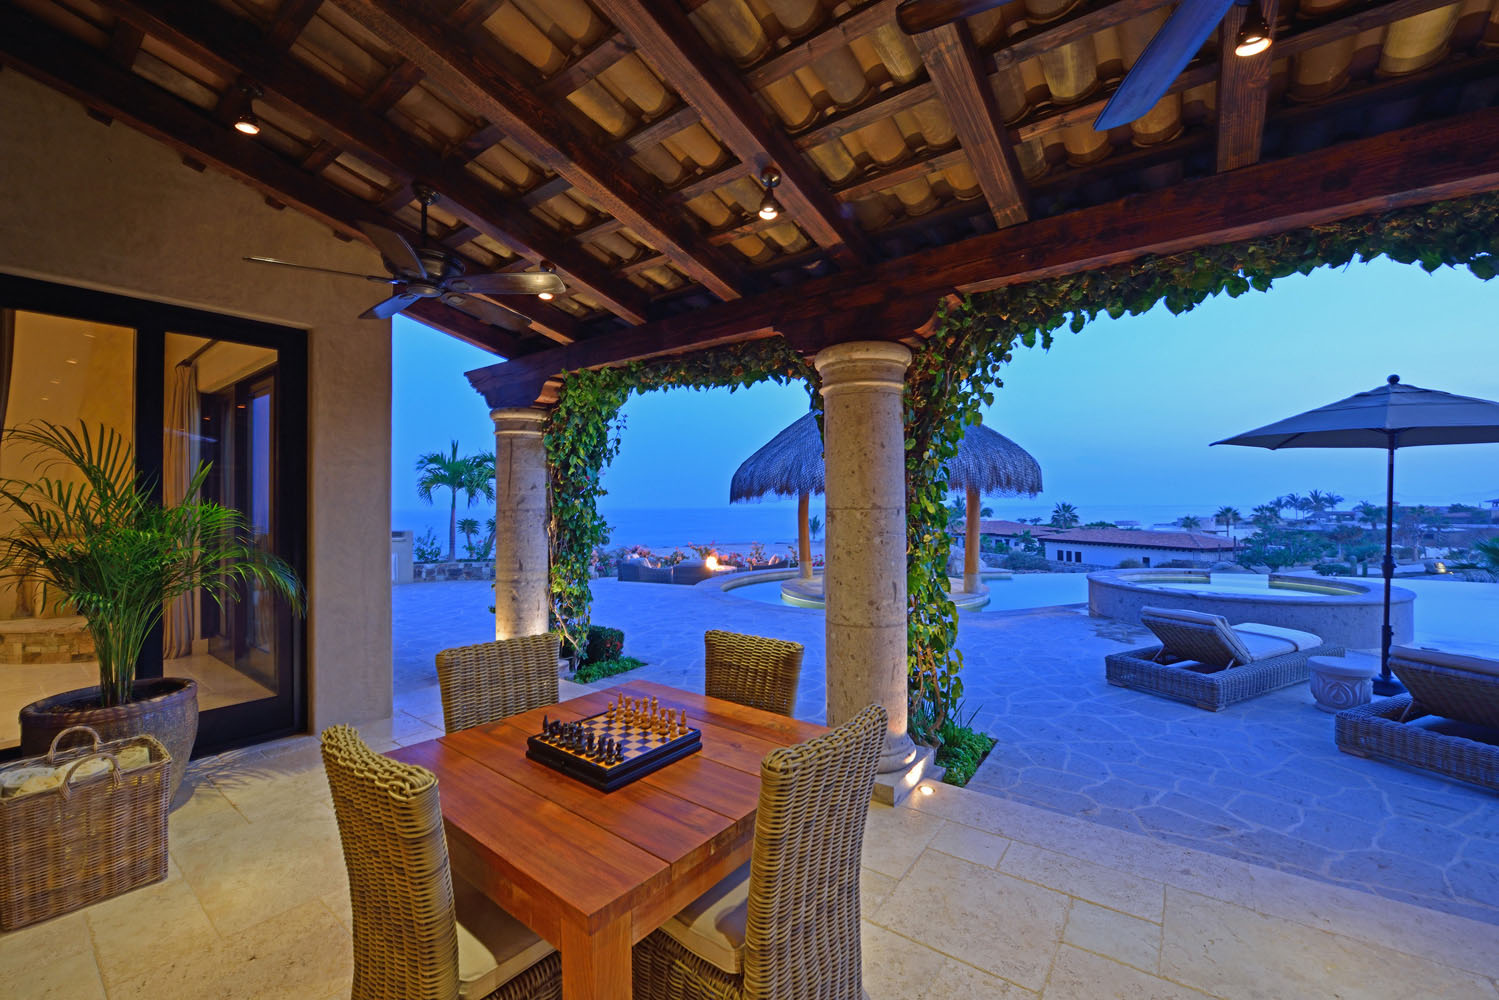 Spectacular Ocean View Estate In The Baja Peninsula